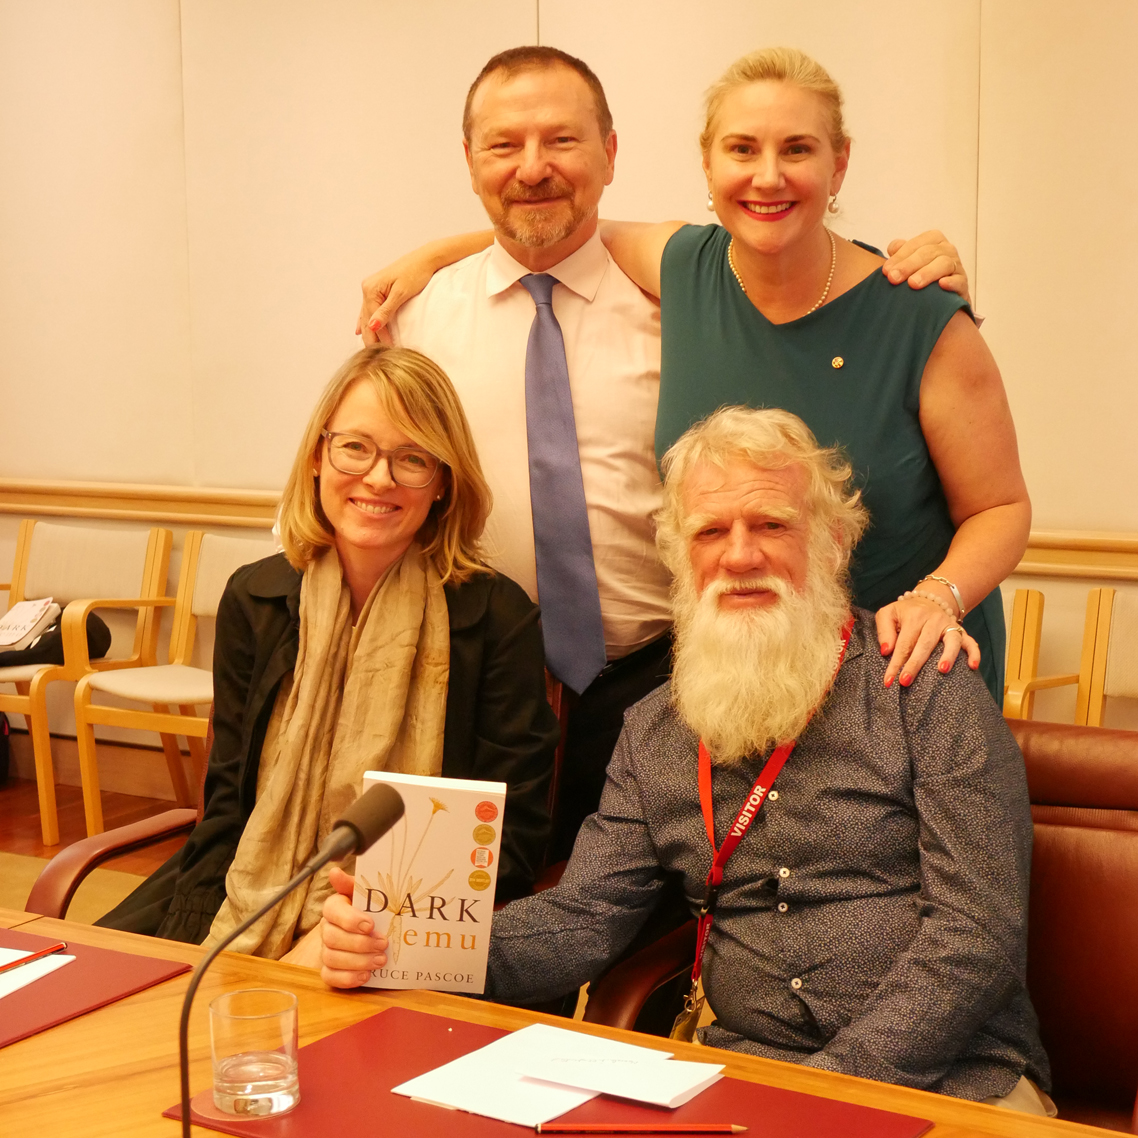 Bruce Pascoe and Anna Moulton from Magabala with Grahame and Hollie, holding the Dark Emu book